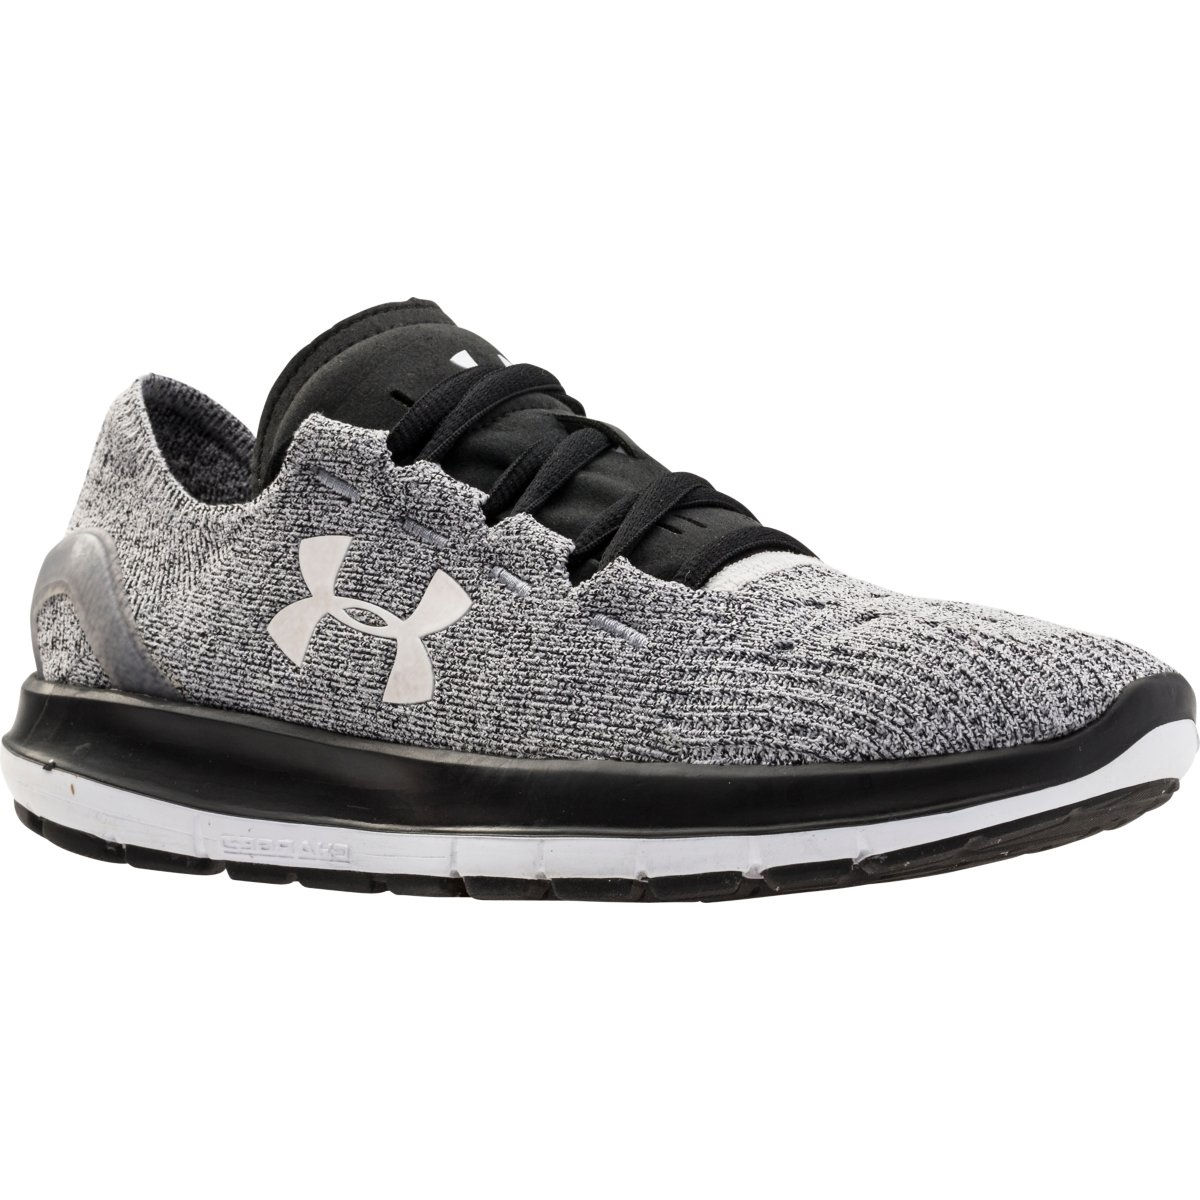 Top Rated Under Armour Running Shoes